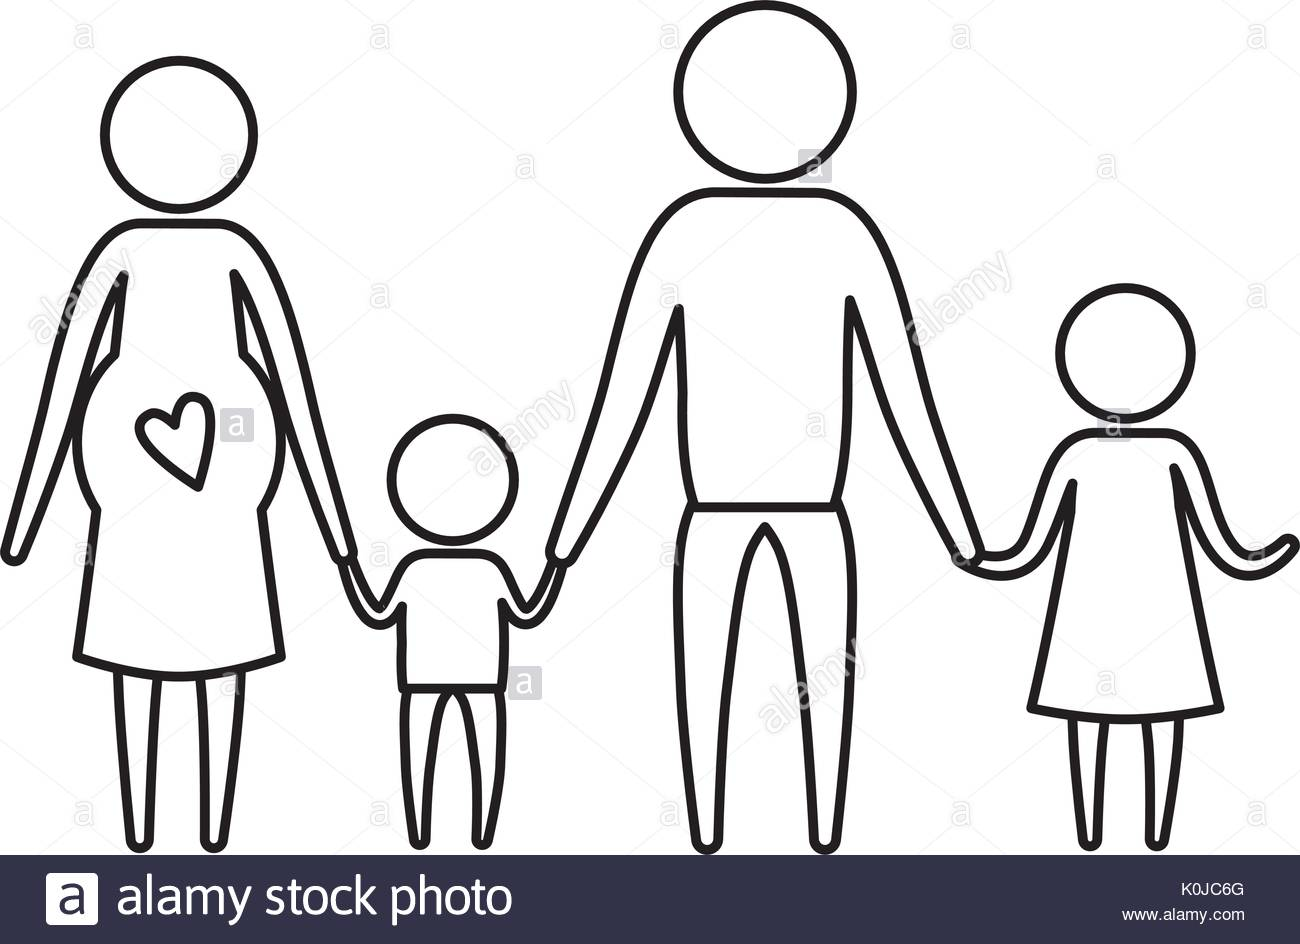 1300x944 Sketch Silhouette Of Pictogram Parents With Mother Pregnancy